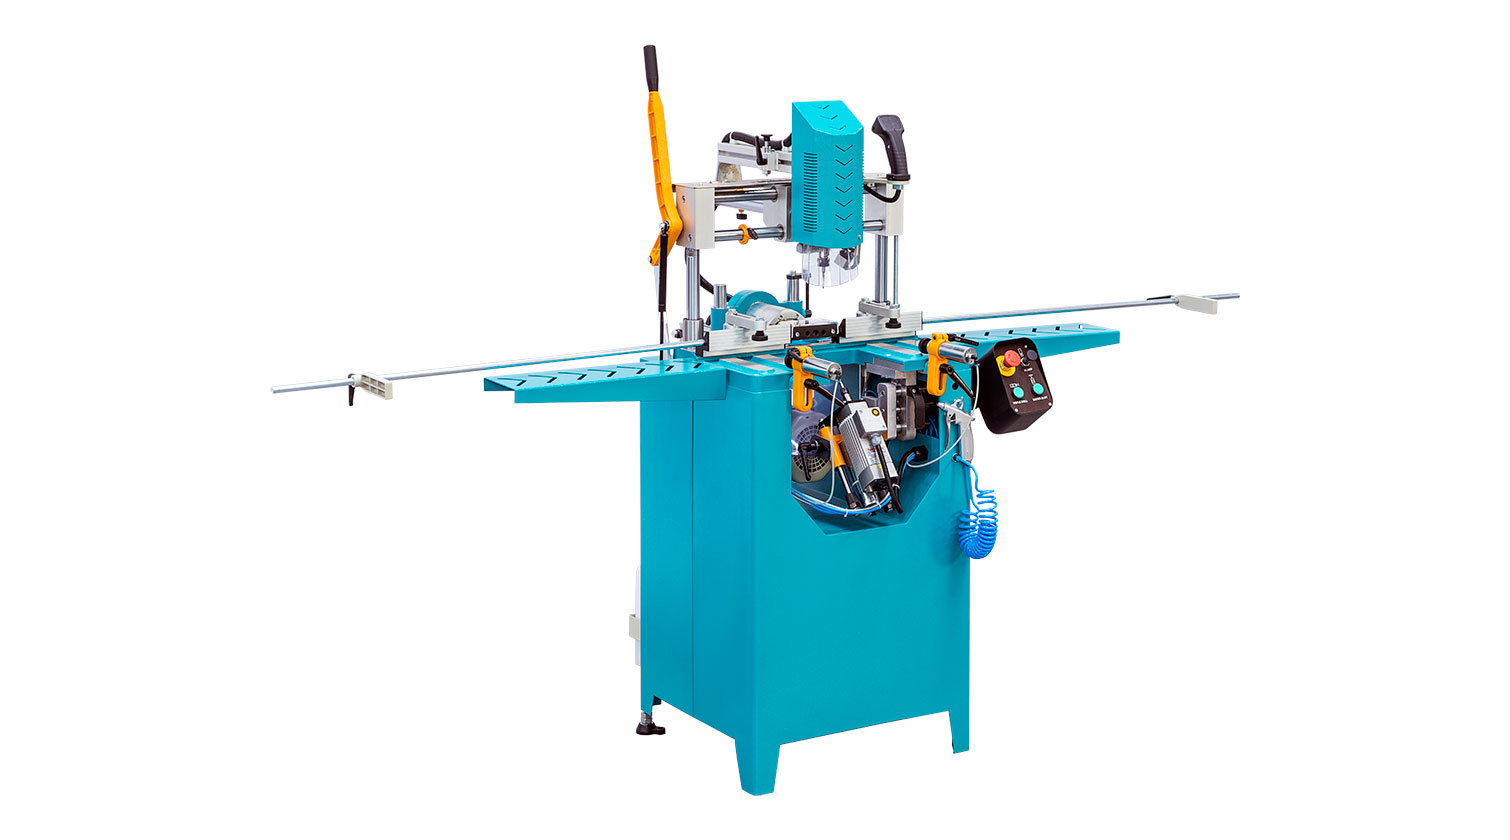 INT aluminum copy router Yilmaz CRM 201 S triple drill tilt and turn